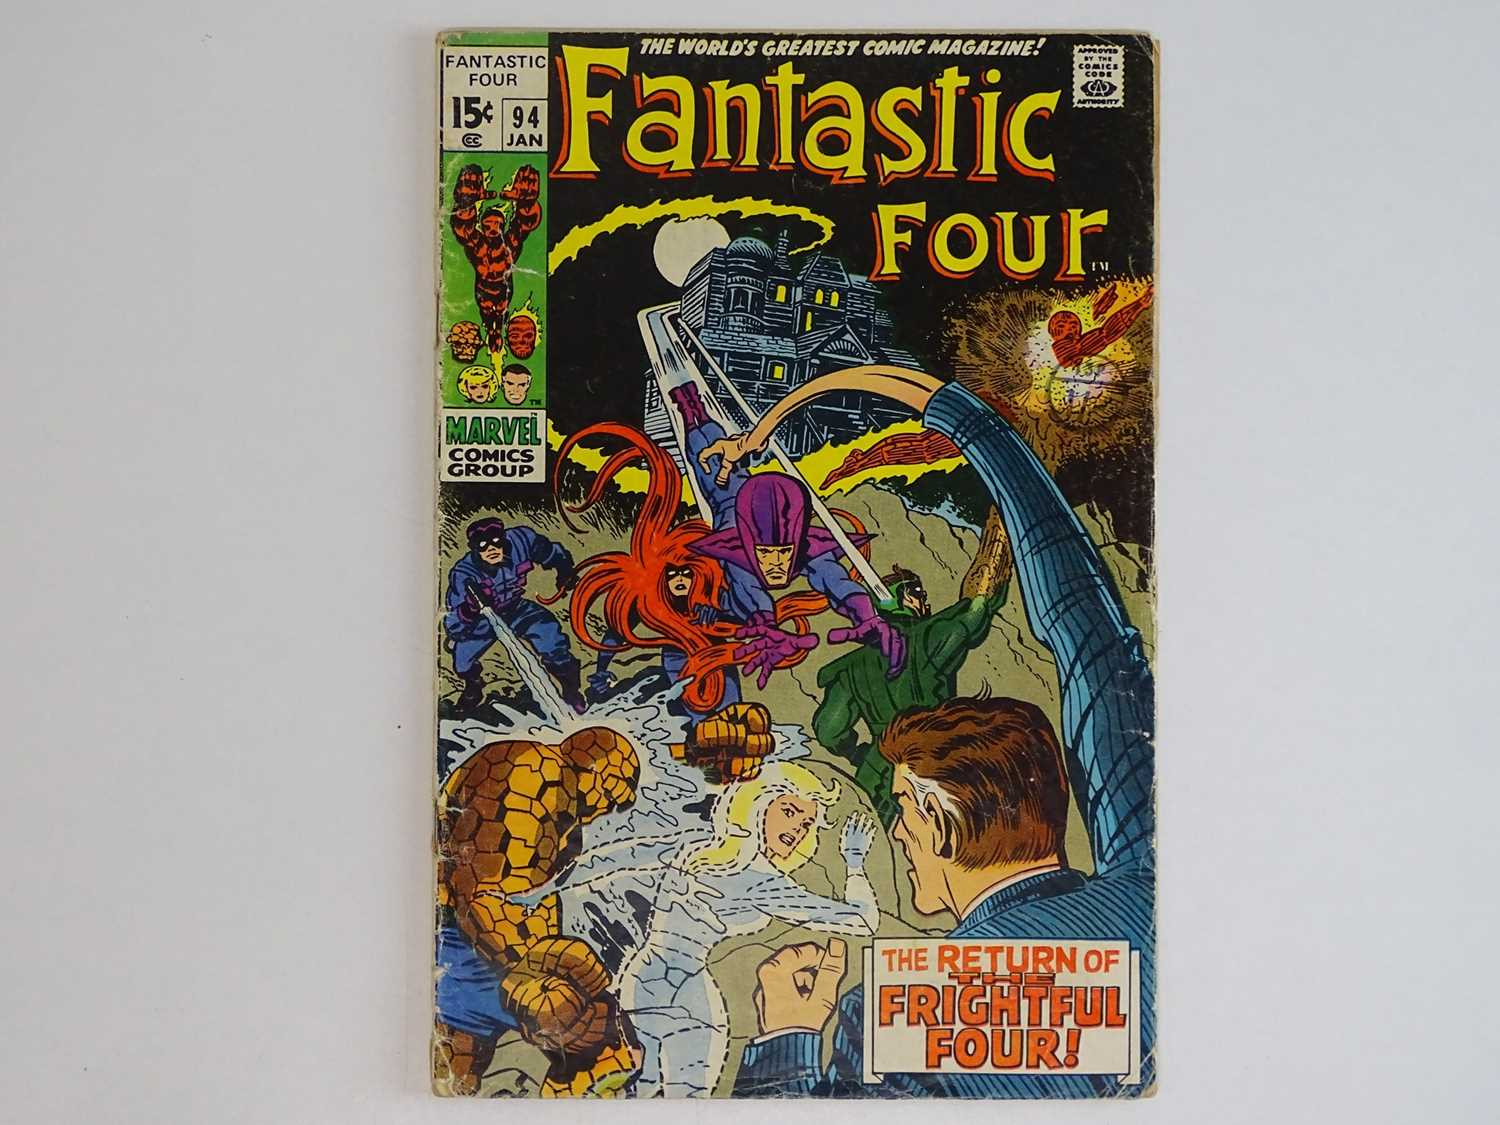 FANTASTIC FOUR #94 - (1970 - MARVEL - UK Price Variant) - Includes First appearance Agatha